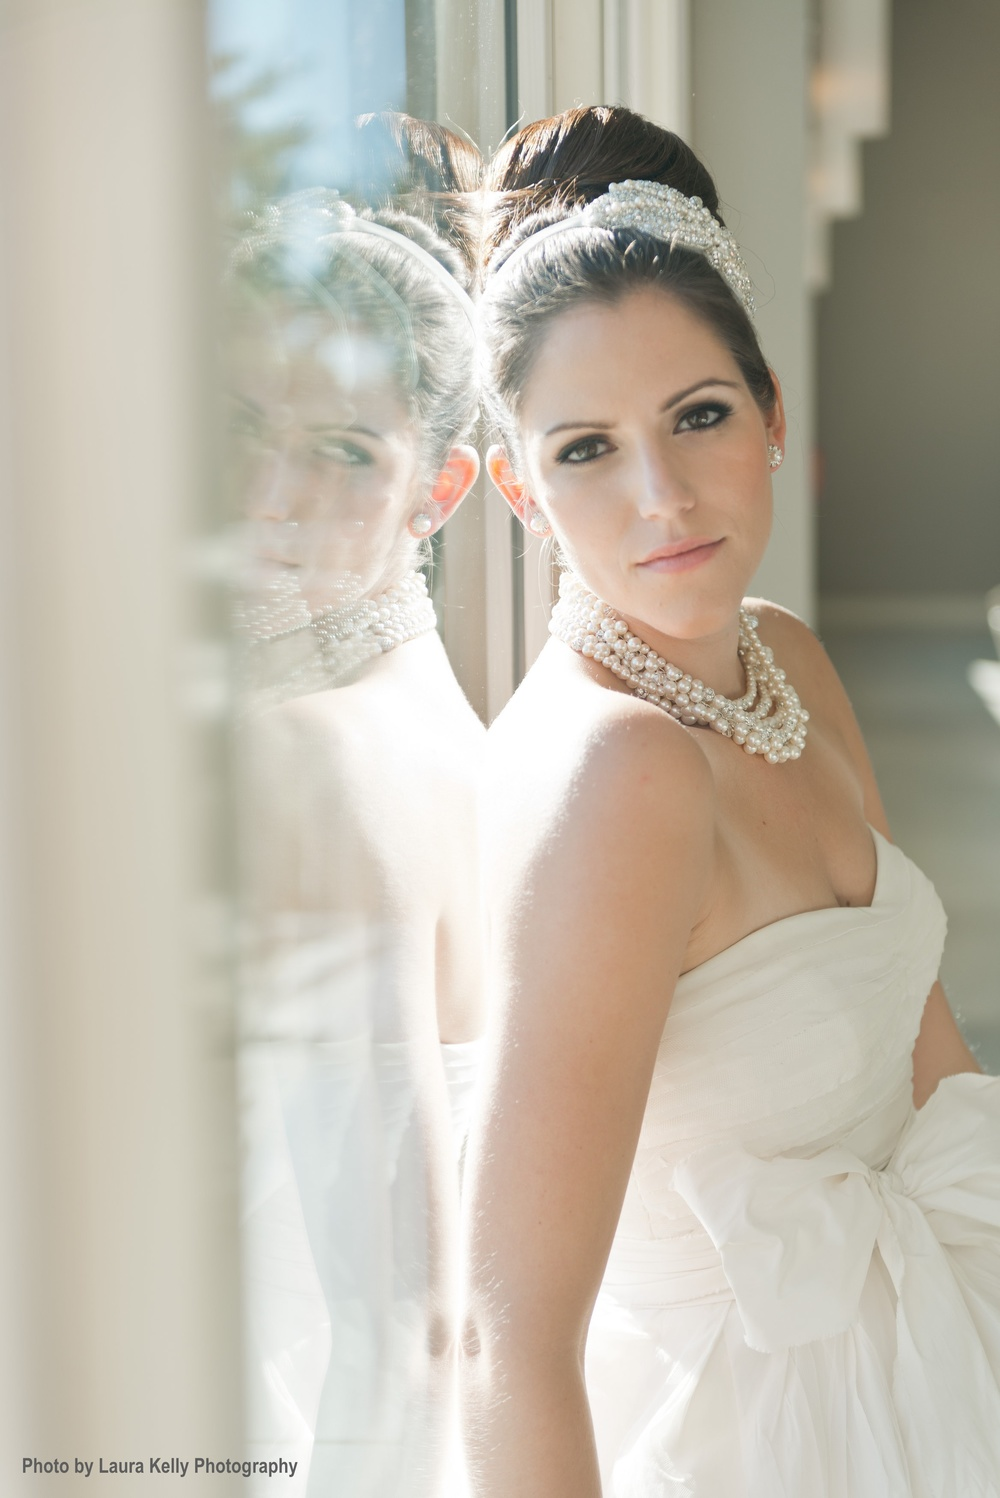 Image by Laura Kelly Photography